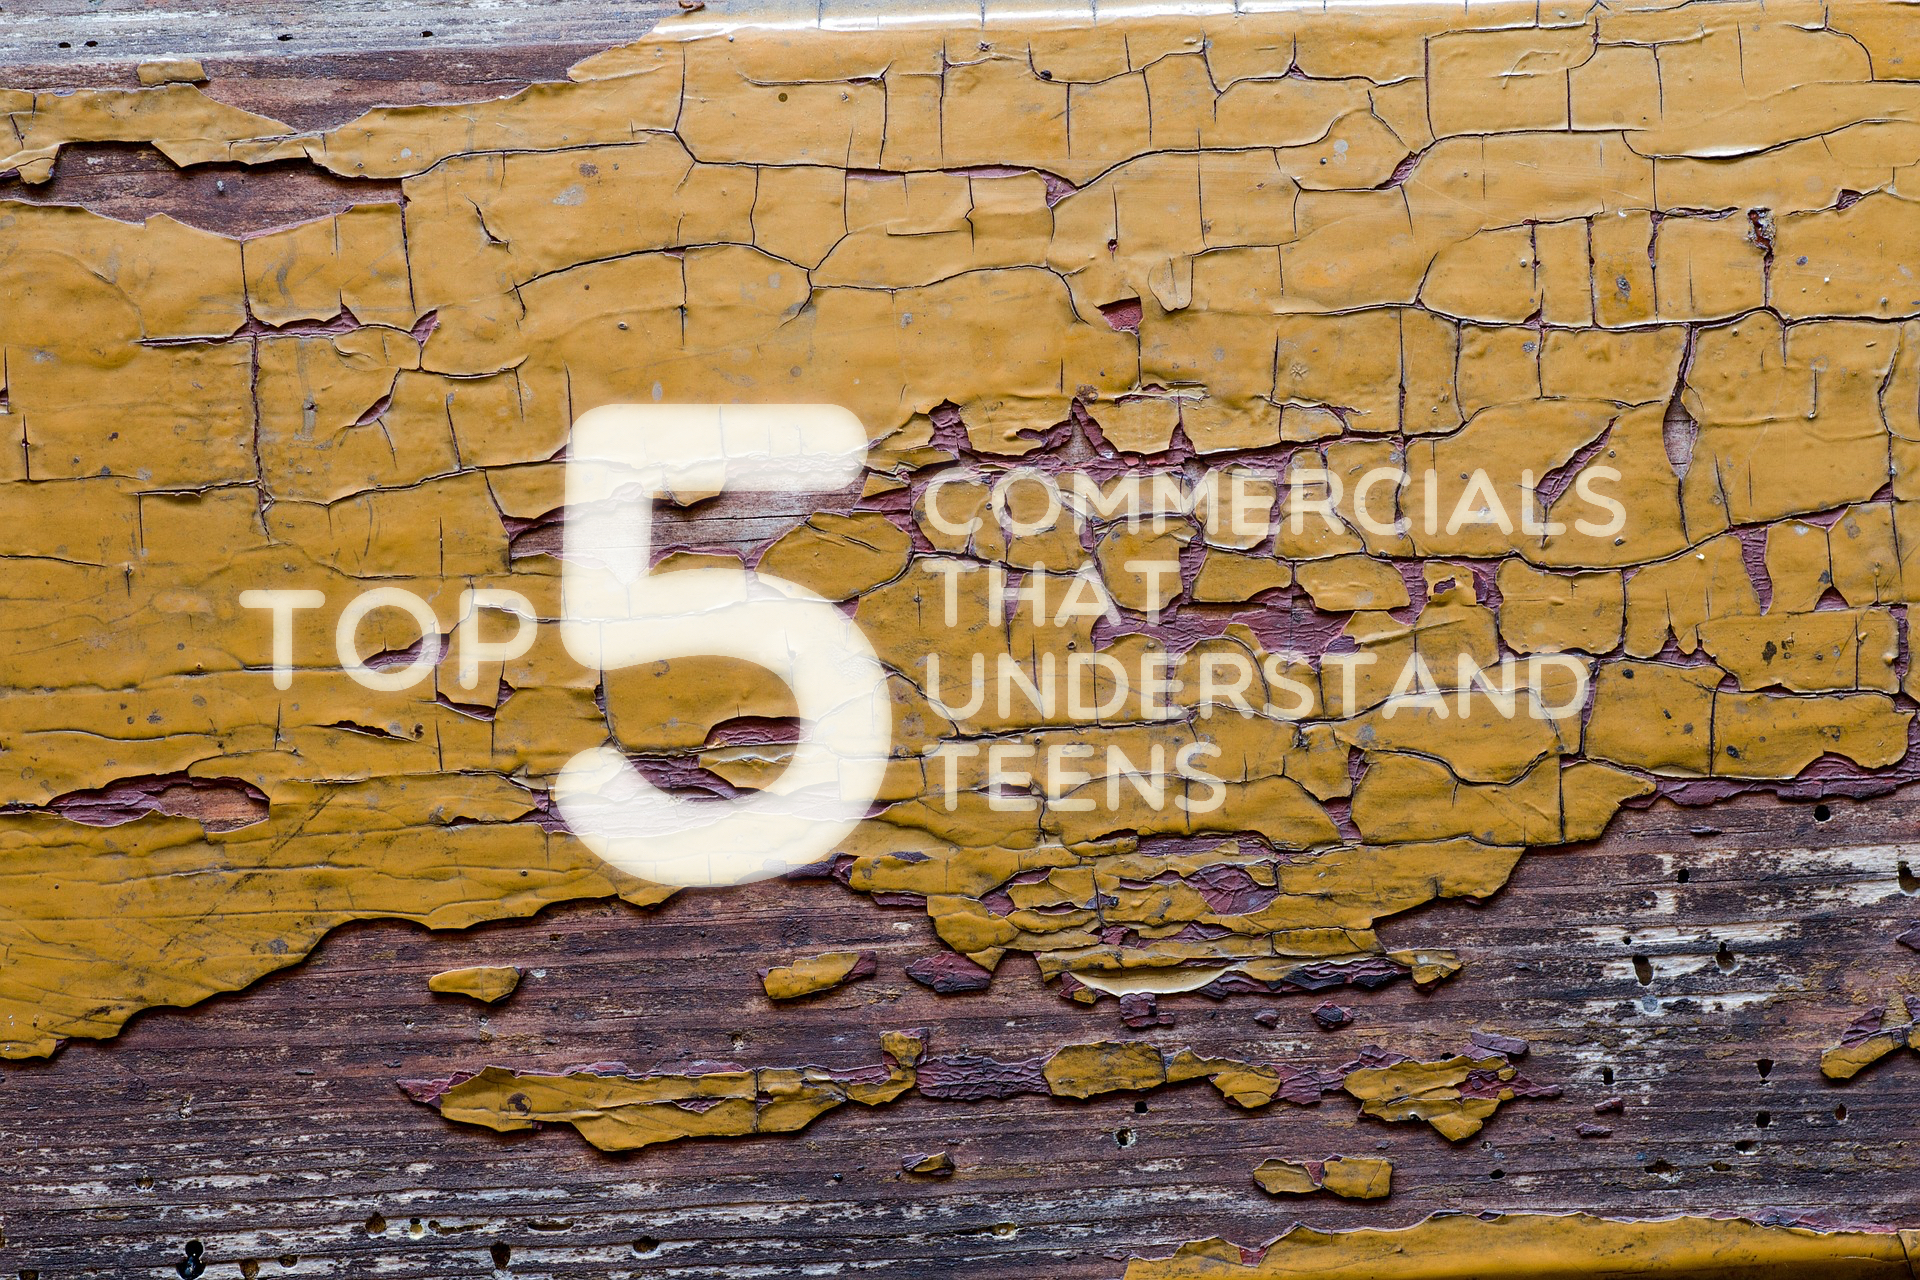 Top 5 Commercials Teens